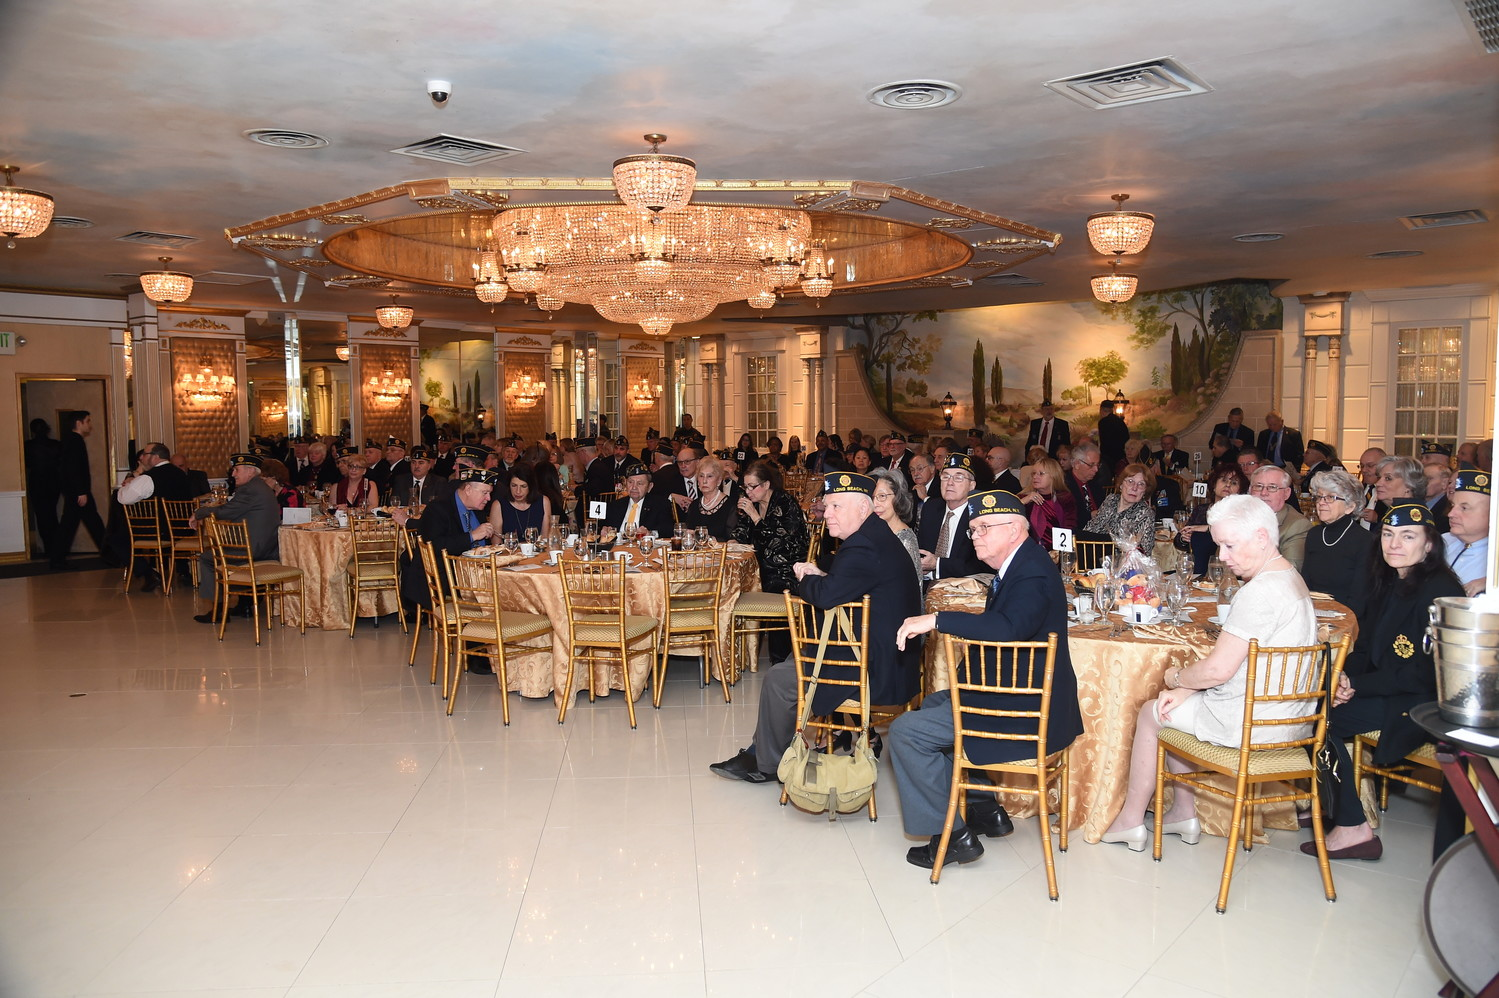 More than 100 people attended the annual event.